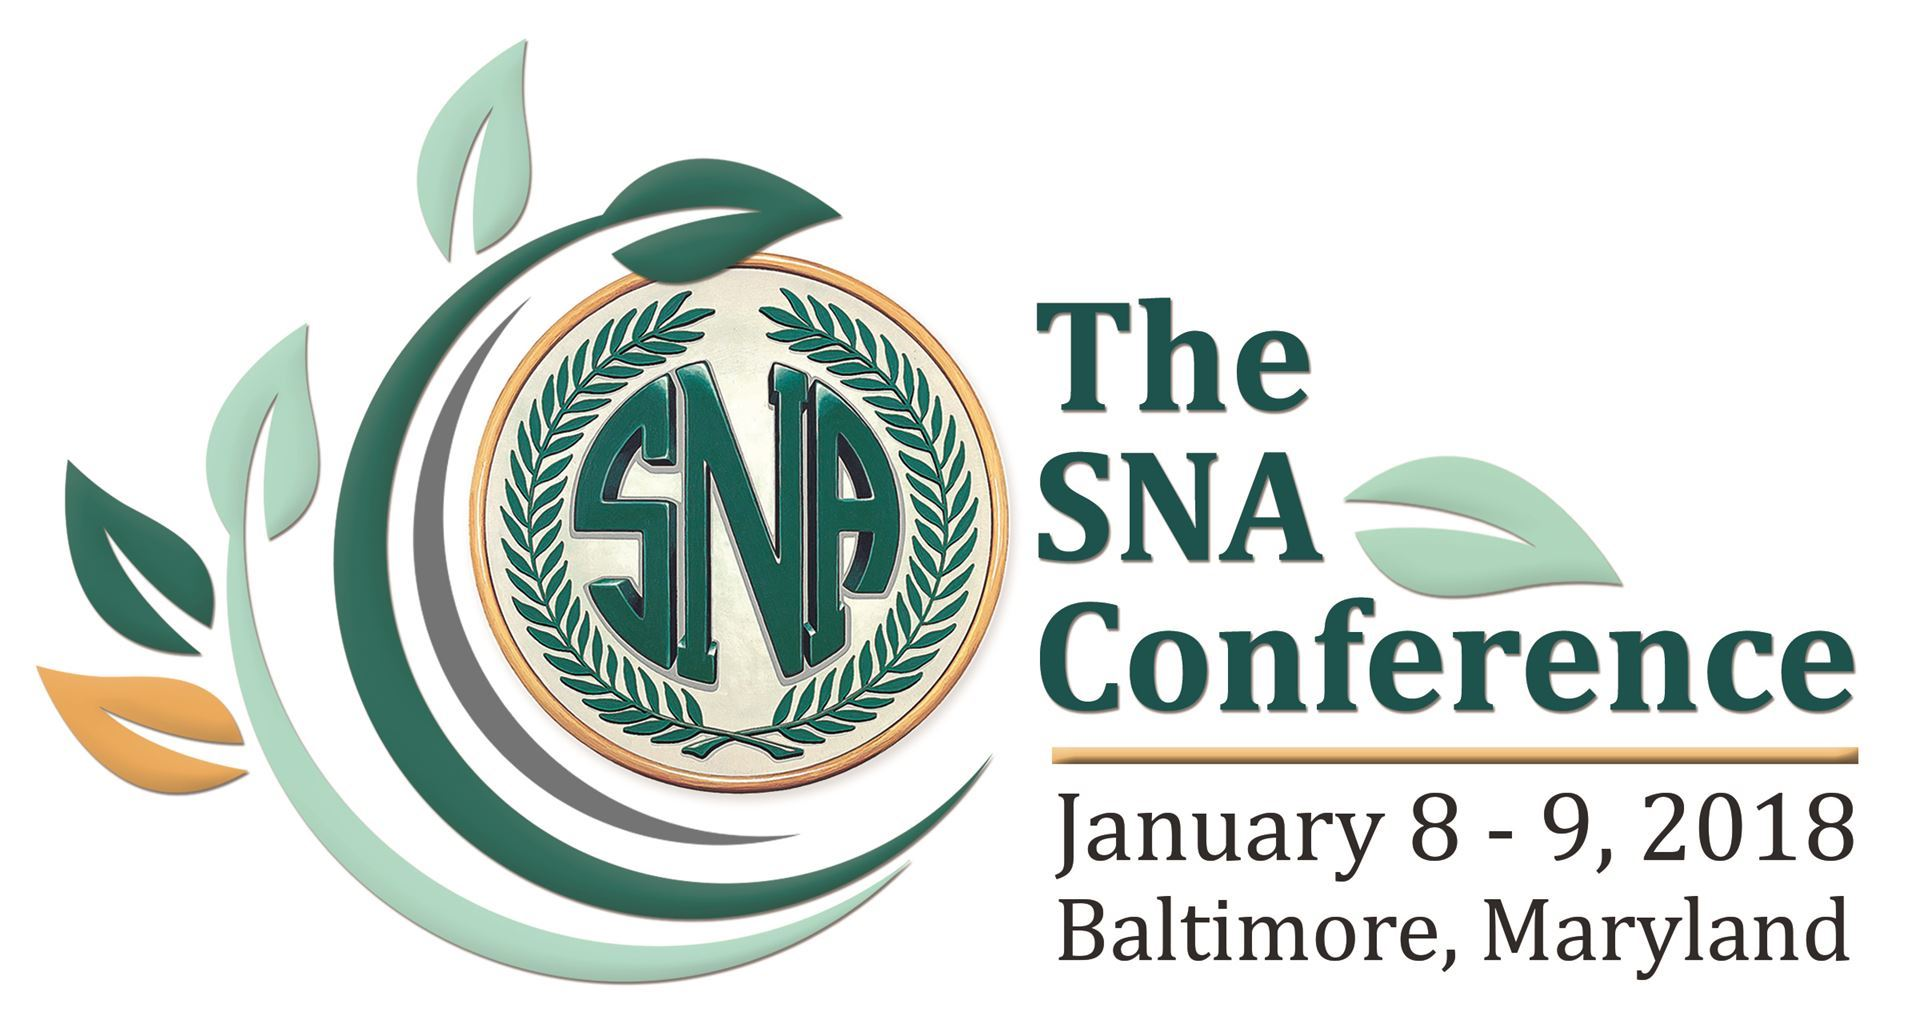 The Southern Plant Conference